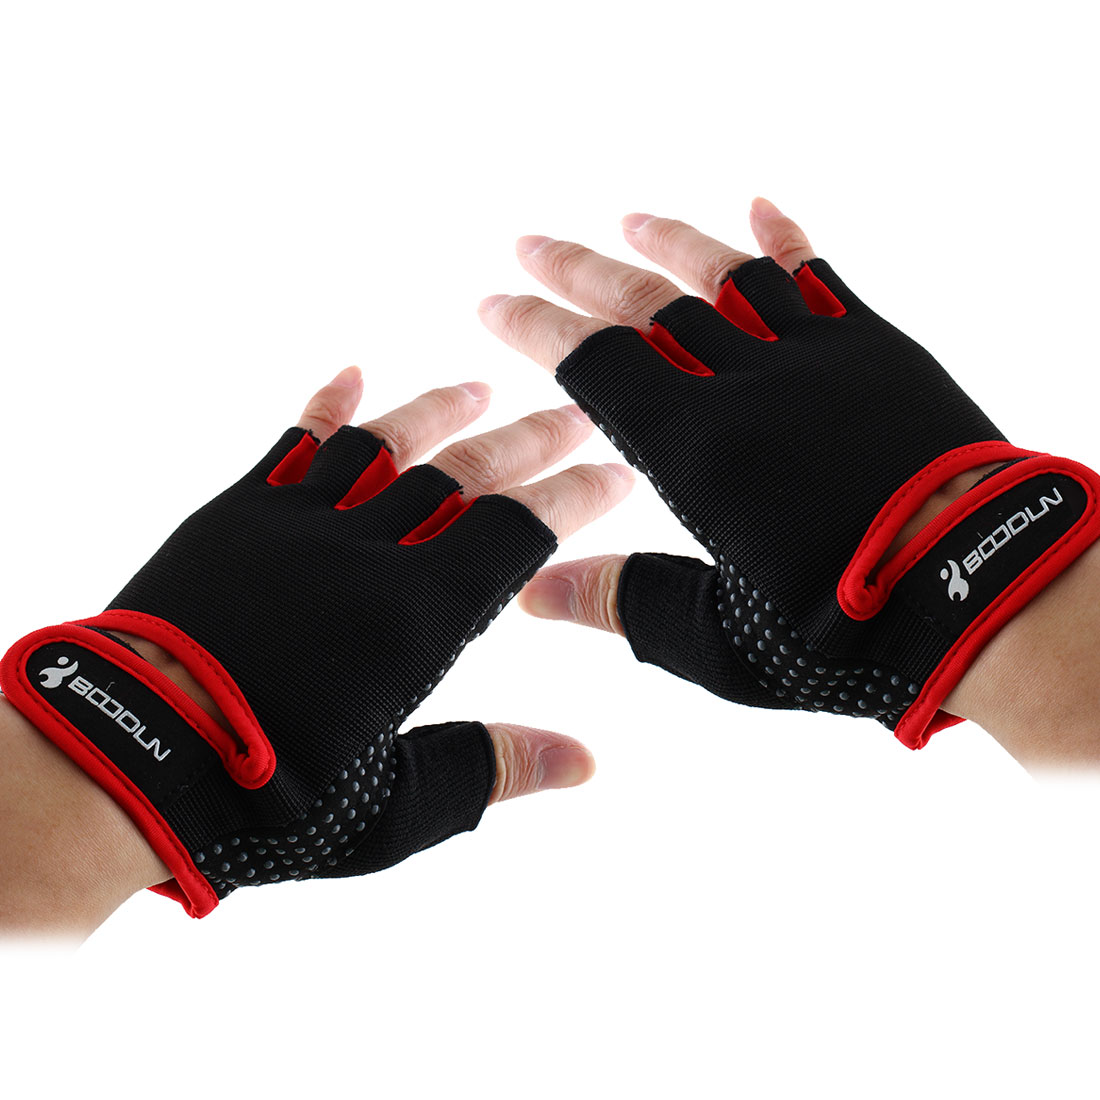 BOODUN Authorized Adult Unisex Spandex Adjustable Sports Training Workout Mittens Fitness Gloves Red XL Pair